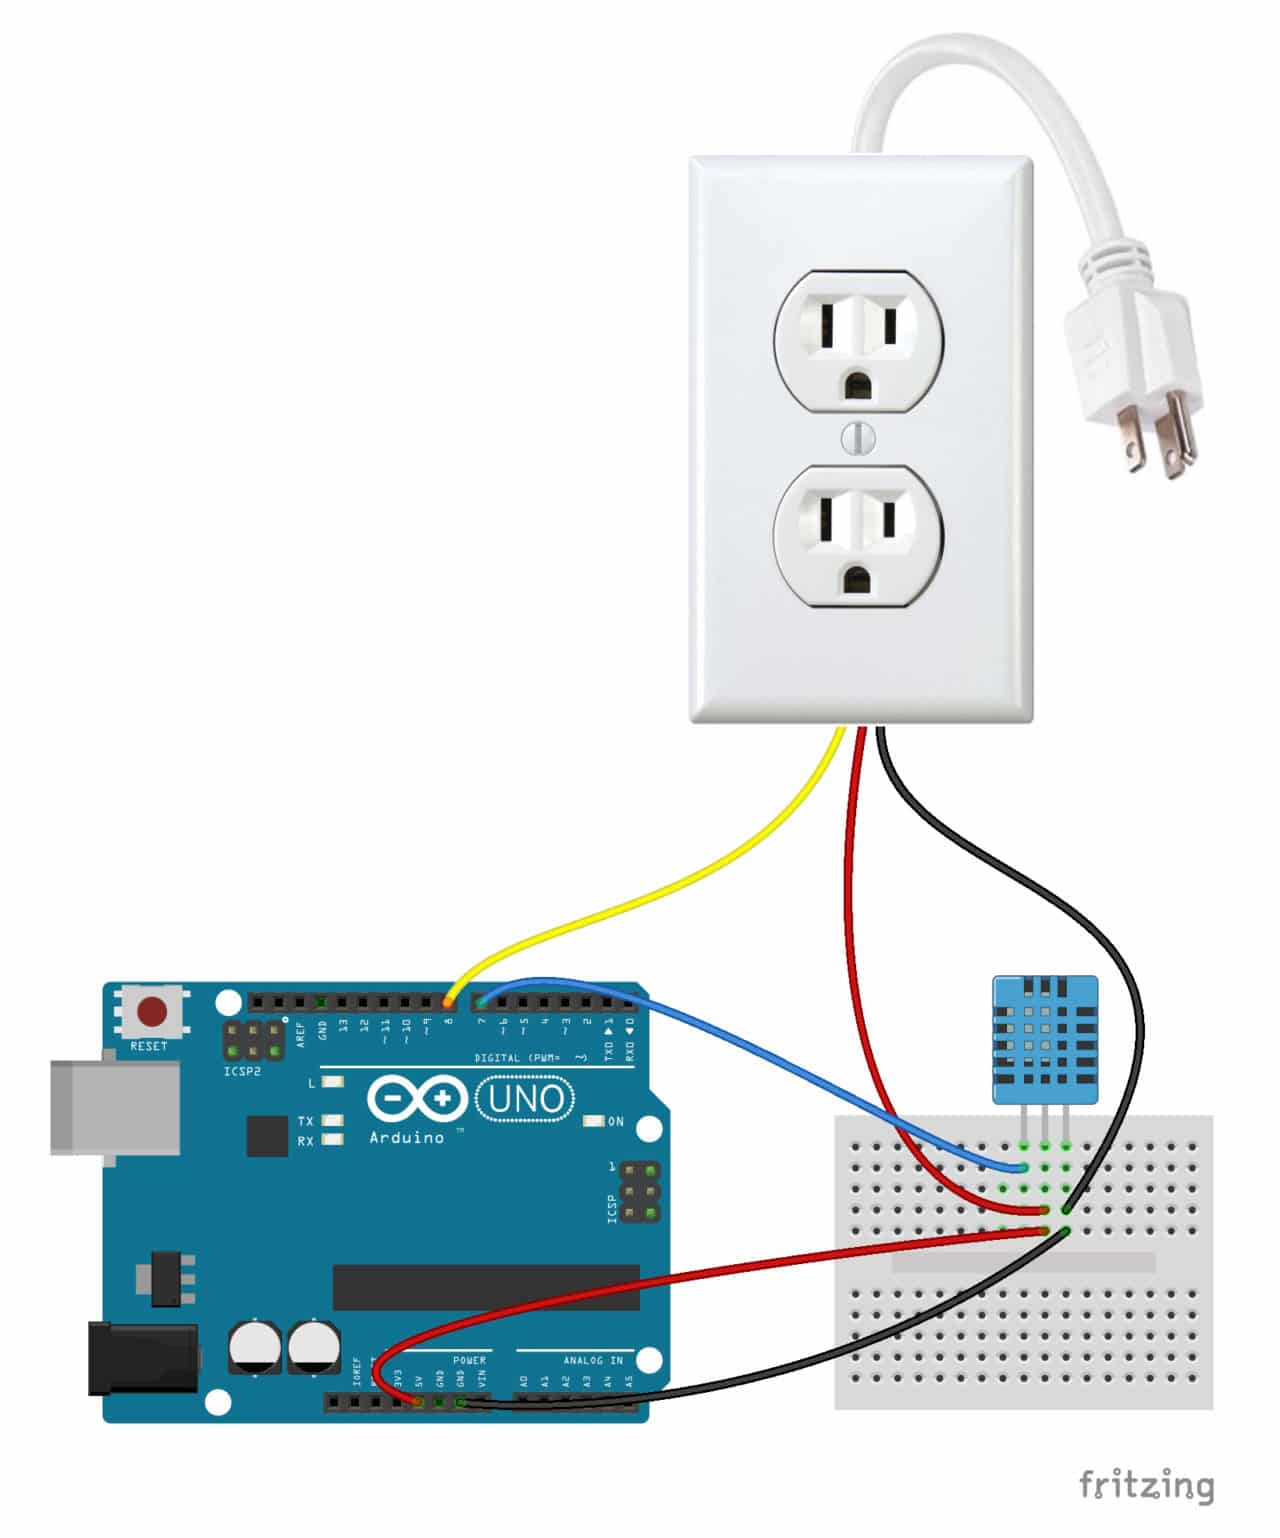 Turn Any Appliance Into A Smart Device With An Arduino Controlled Power Of Light Wall Schematic To Electrical Wiring Follow This Diagram Make The Connections